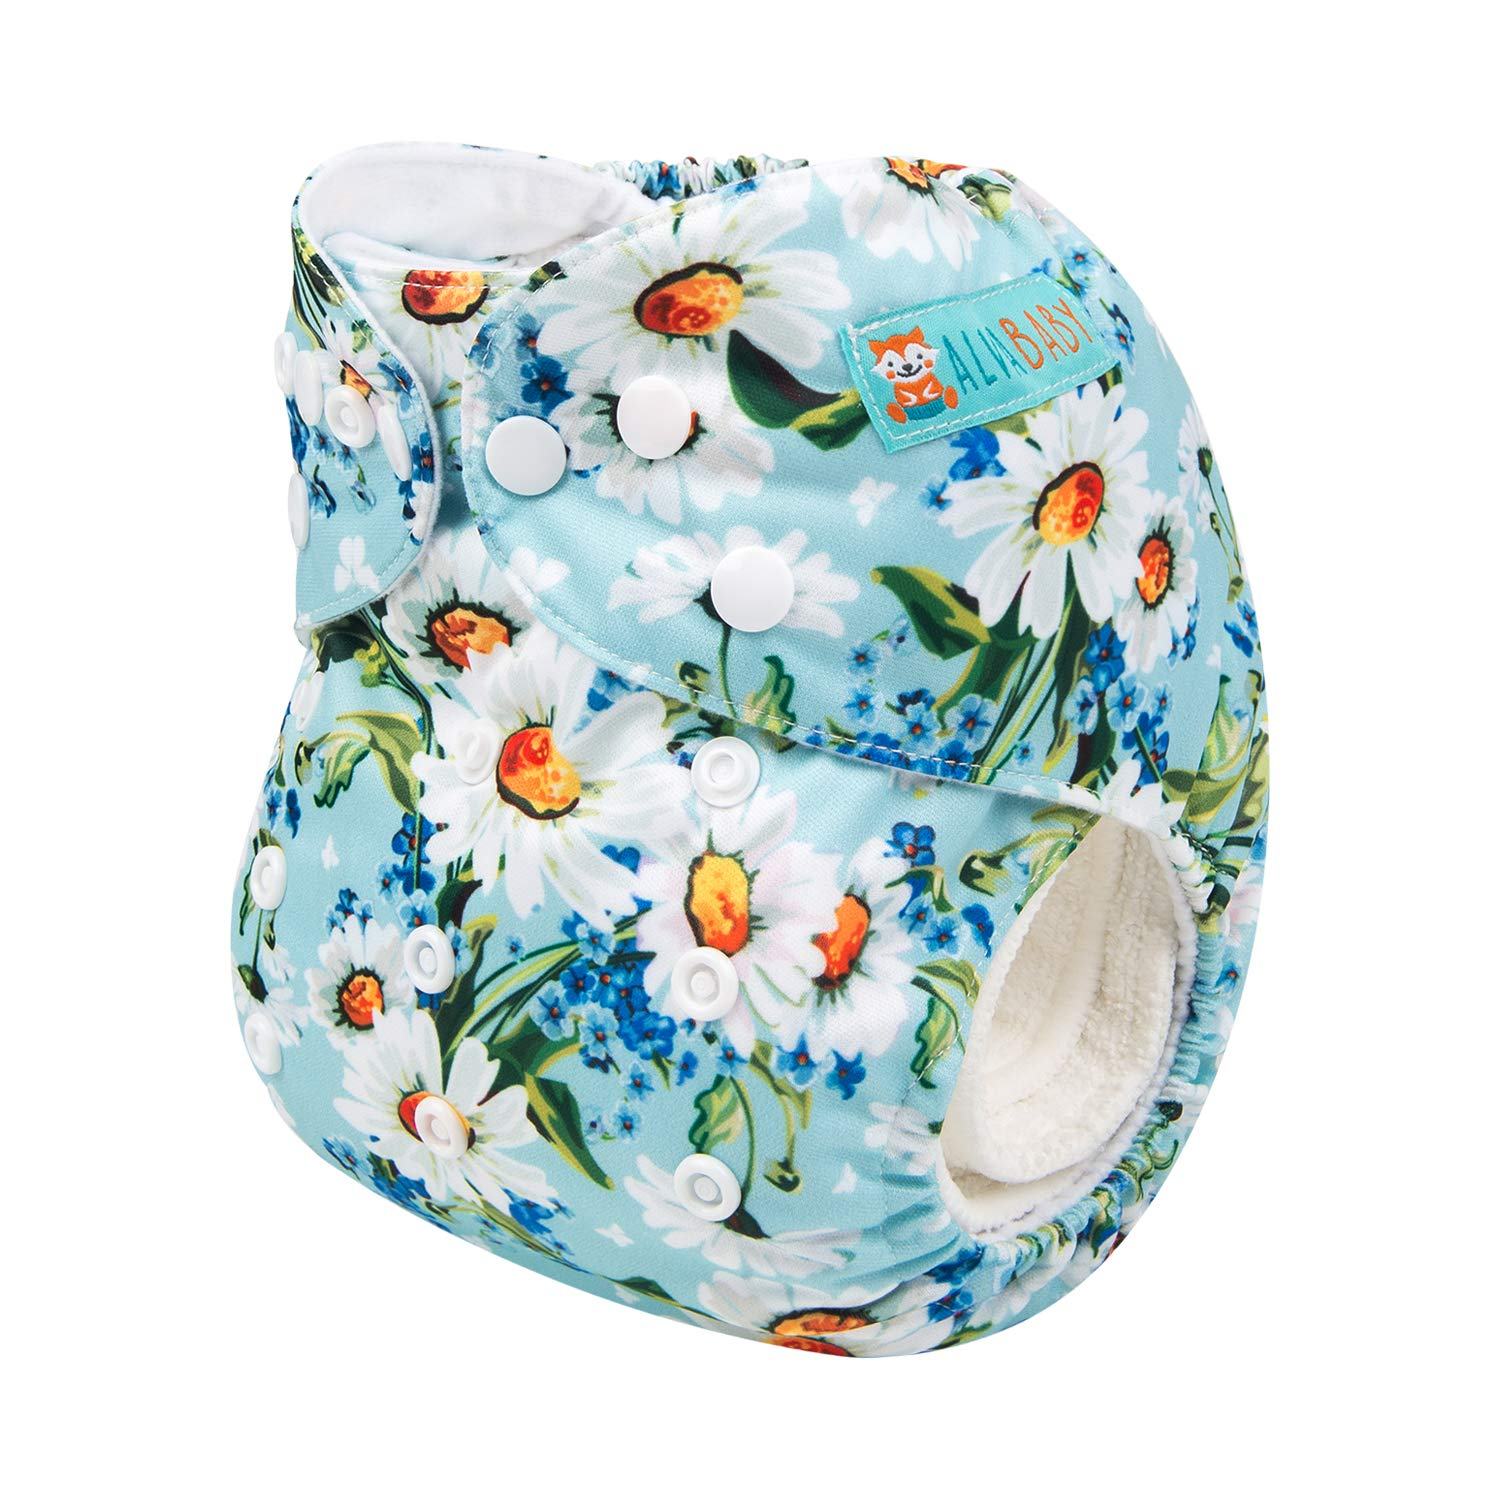 ALVABABY Cloth Diapers One Size Adjustable Washable Reusable One Pocket Nappy for Baby Girls and Boys with 2 Inserts H171